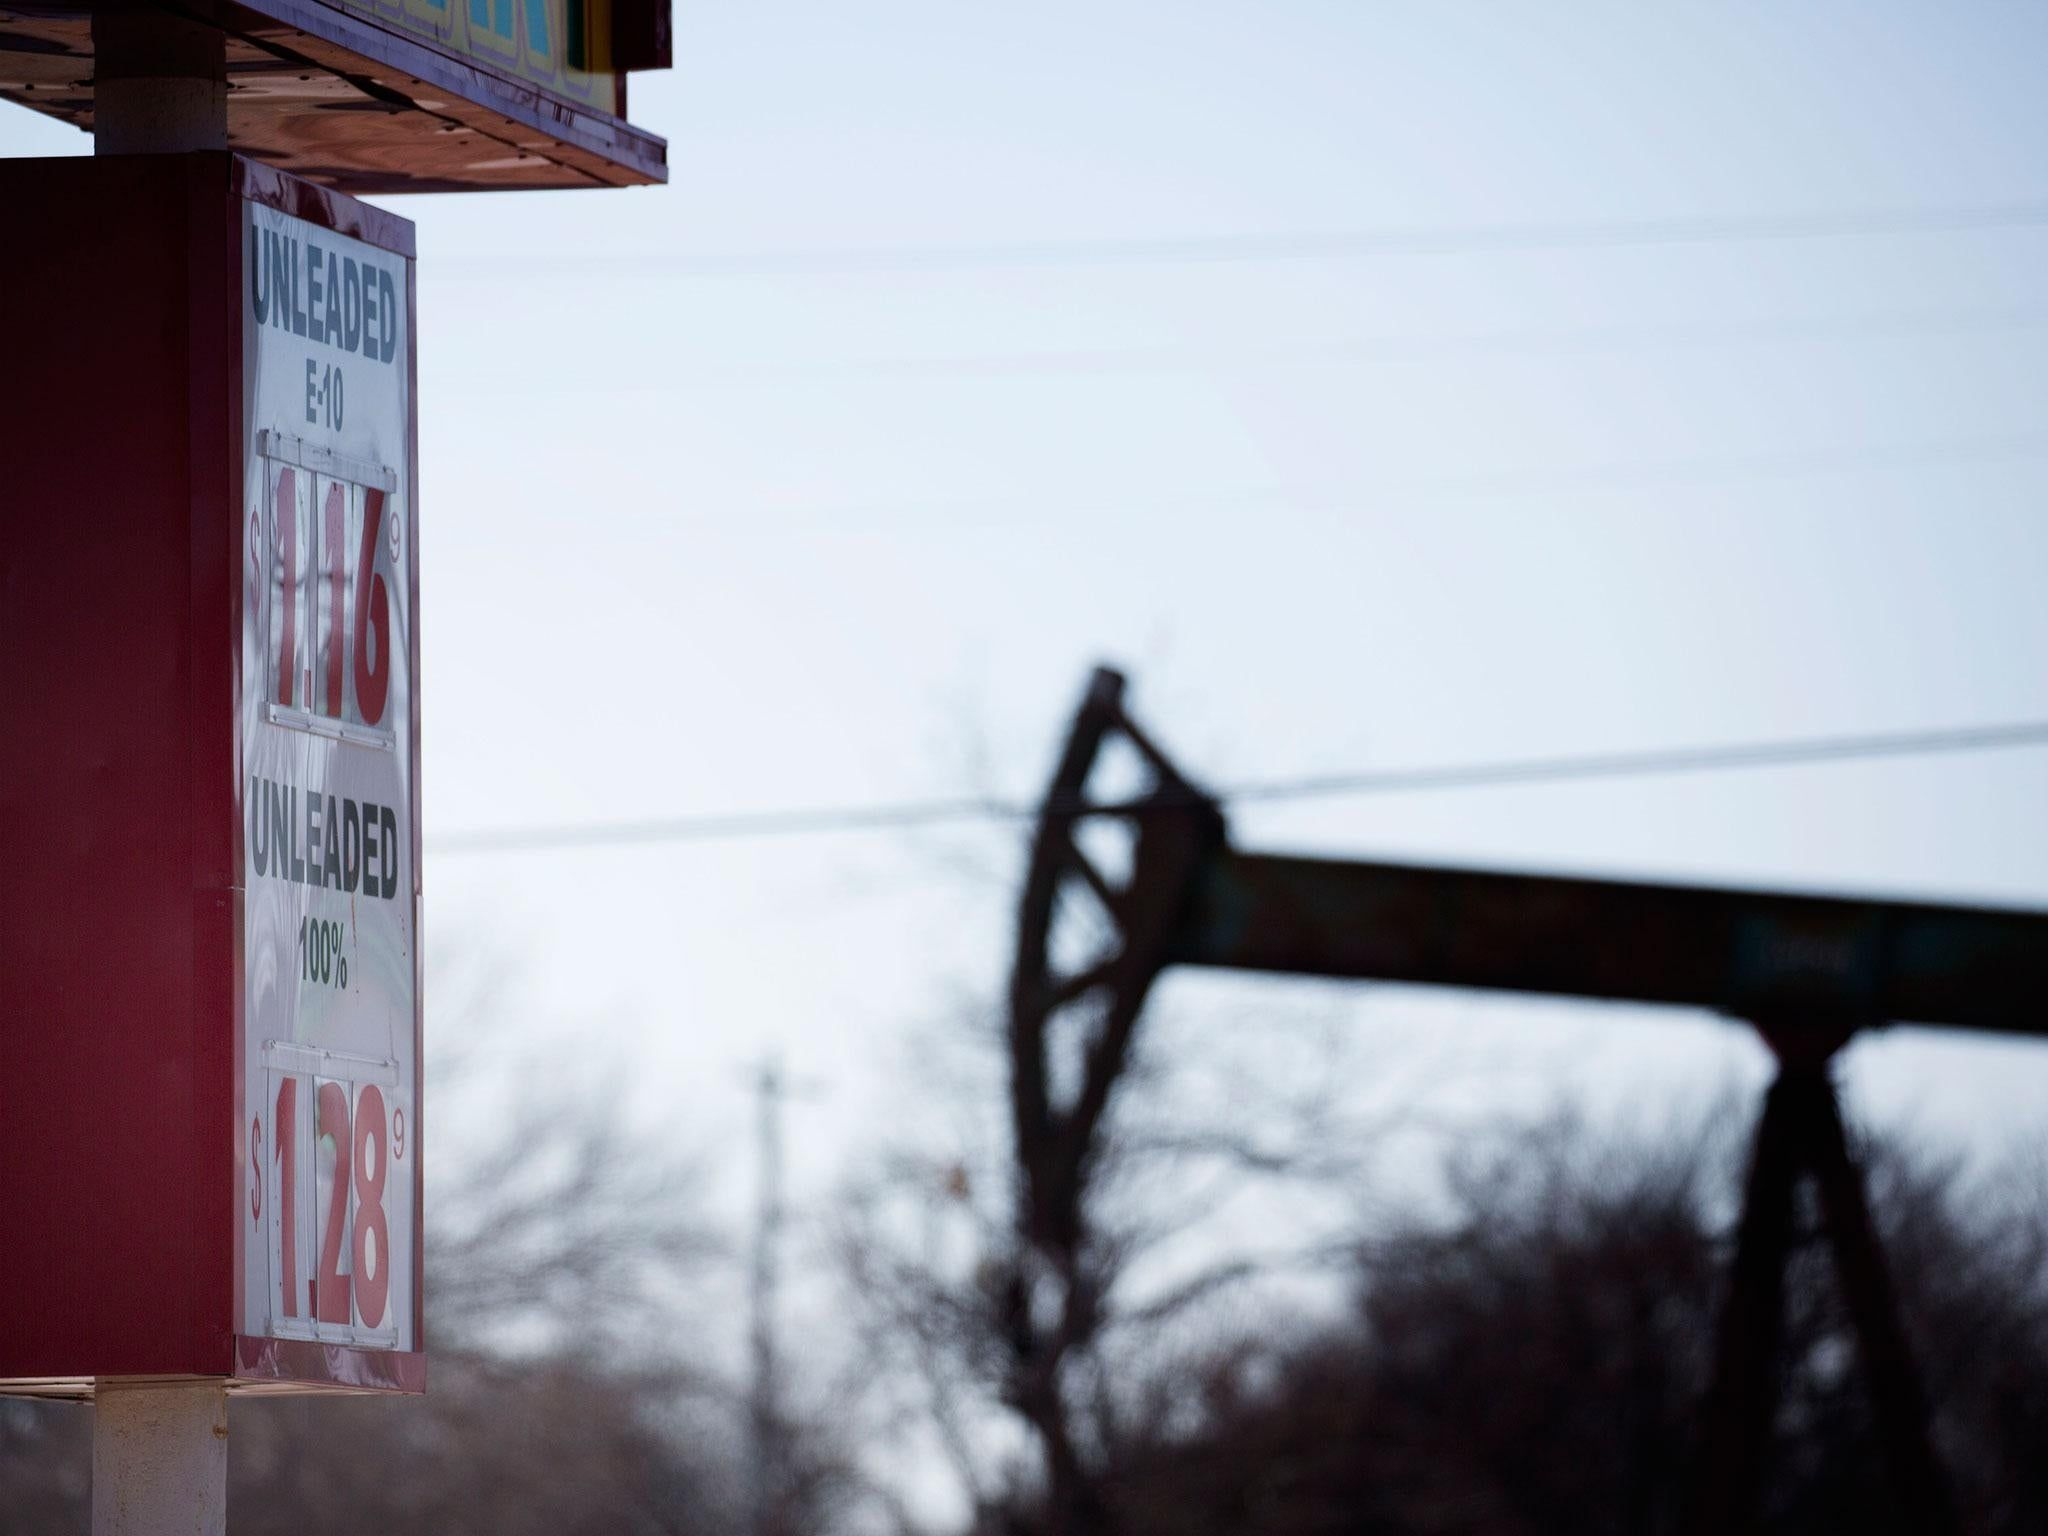 Oklahoma earthquake: 37 wells ordered to shut down after scientists' warning